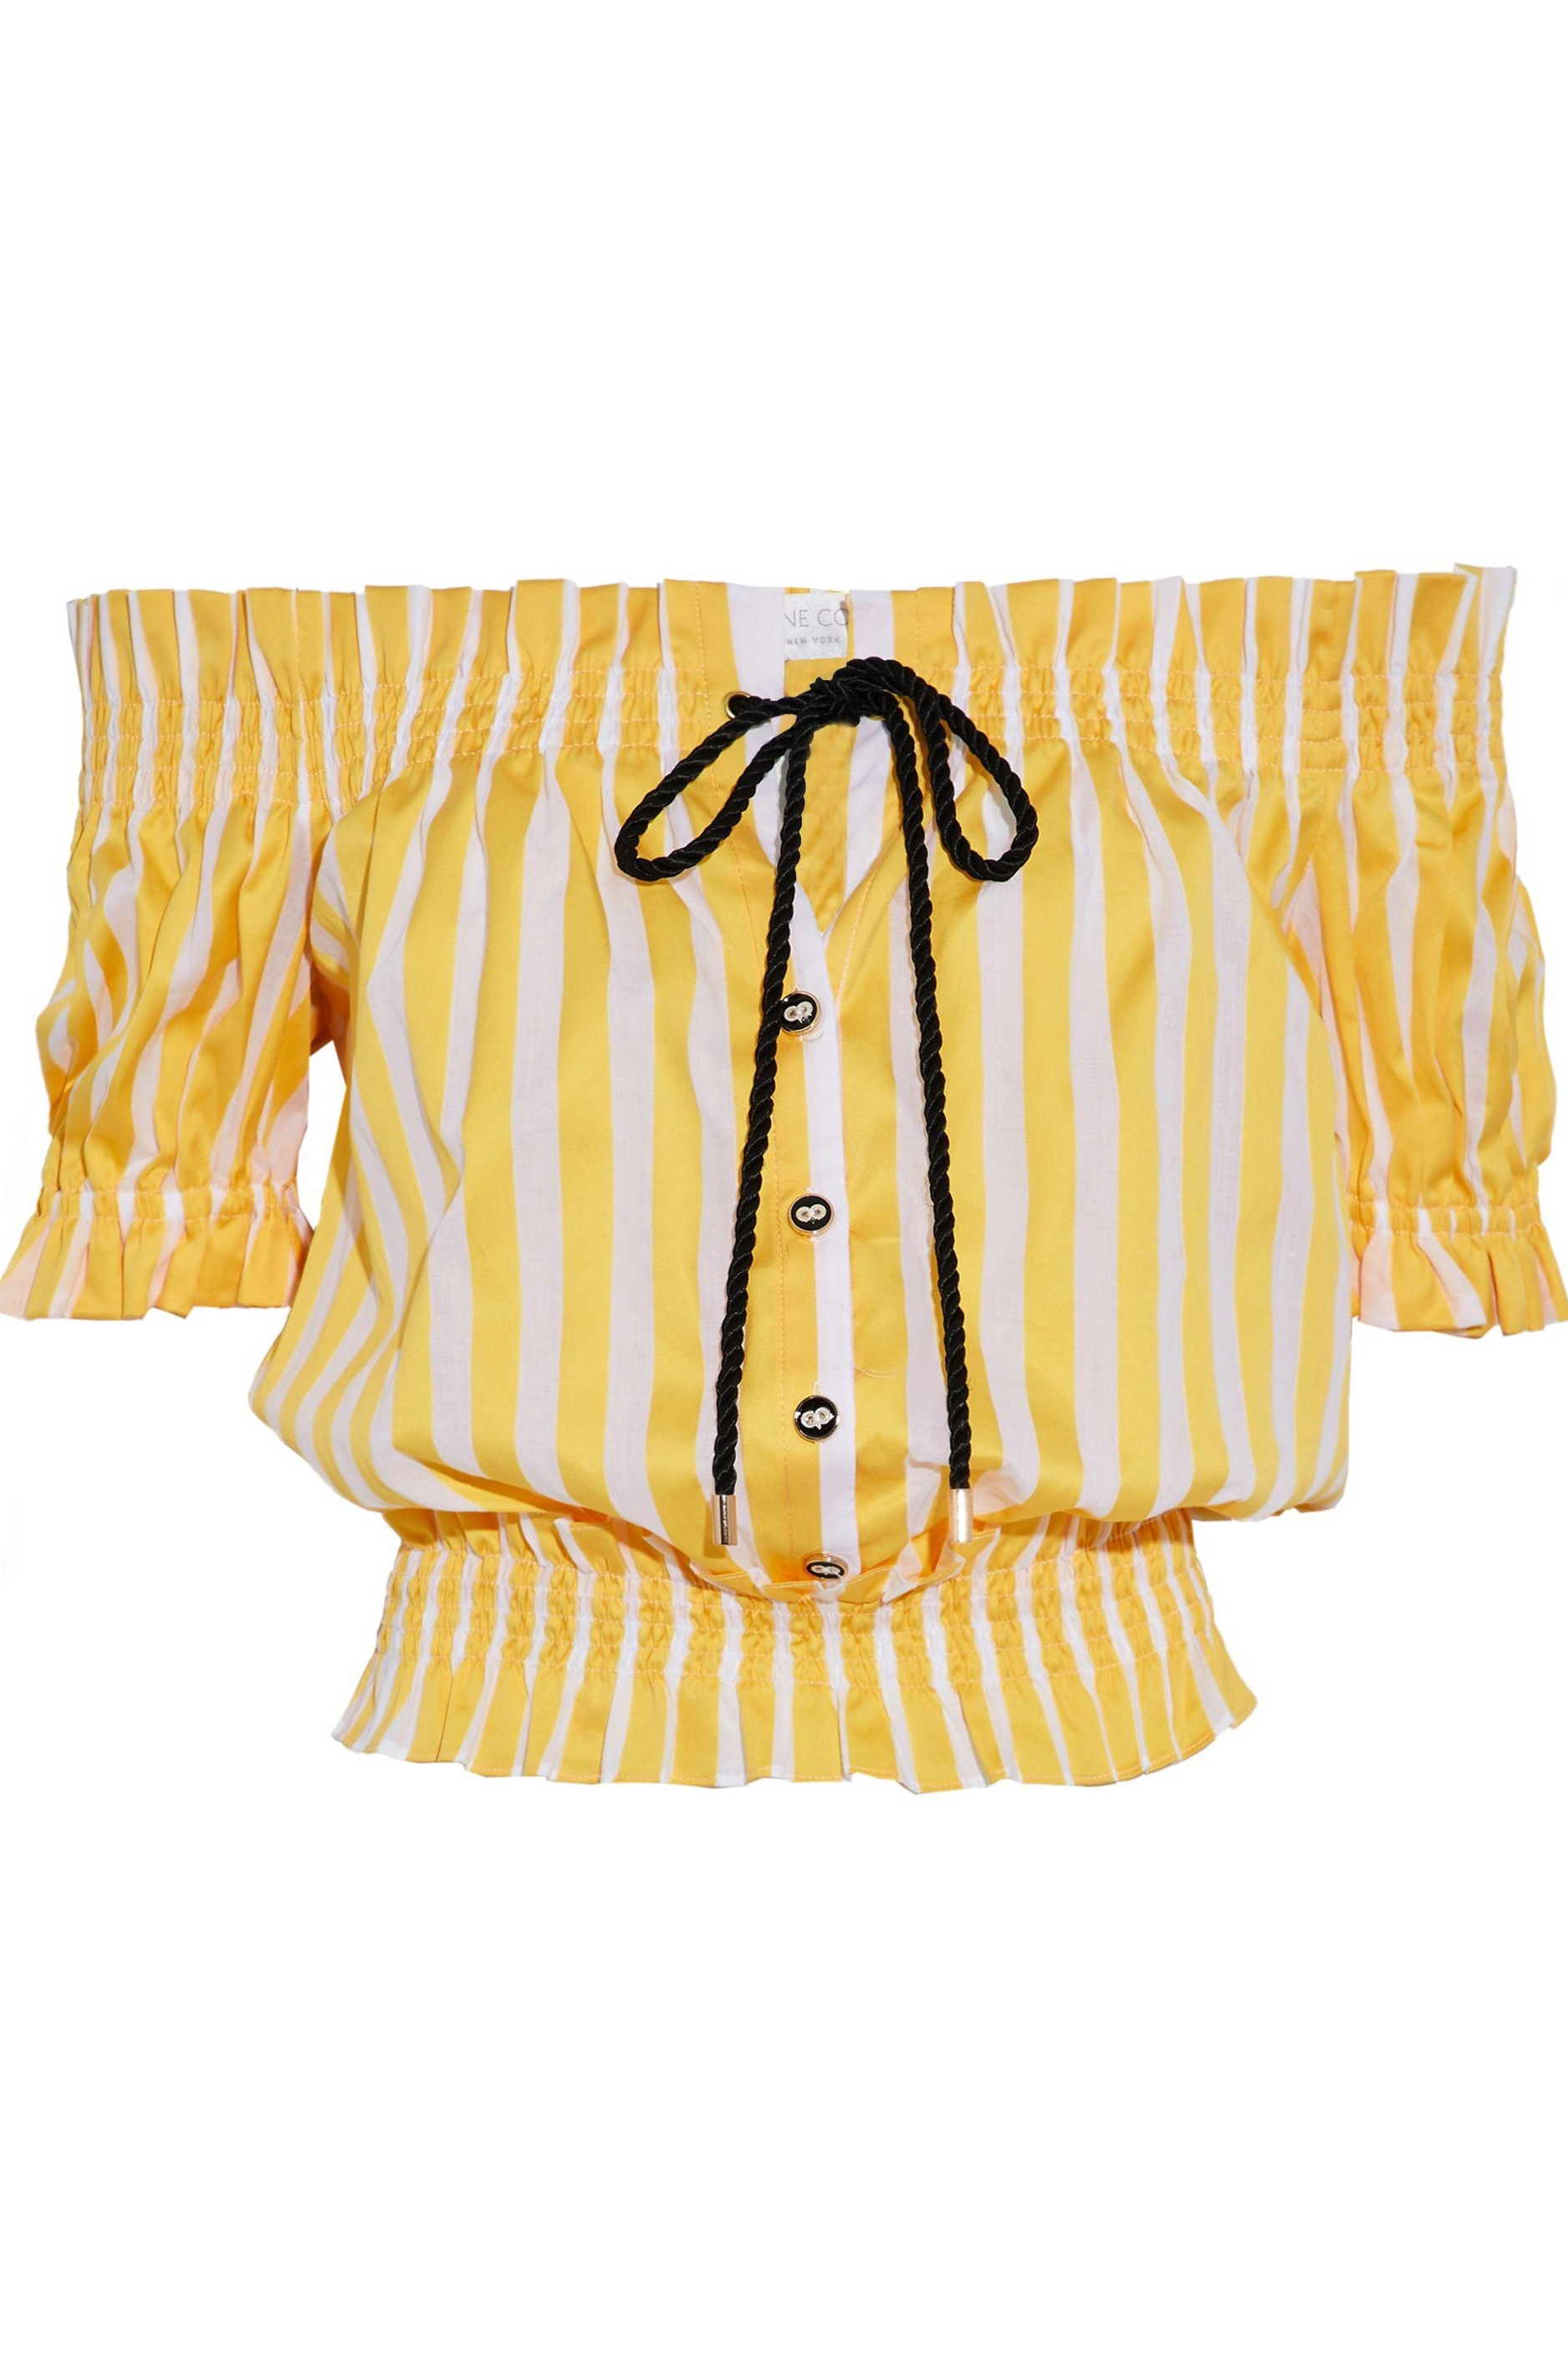 caroline-constas-Yellow-Woman-Peasant-Off-the-shoulder-Shirred-Striped-Cotton-poplin-Top-Yellow-2.jpg